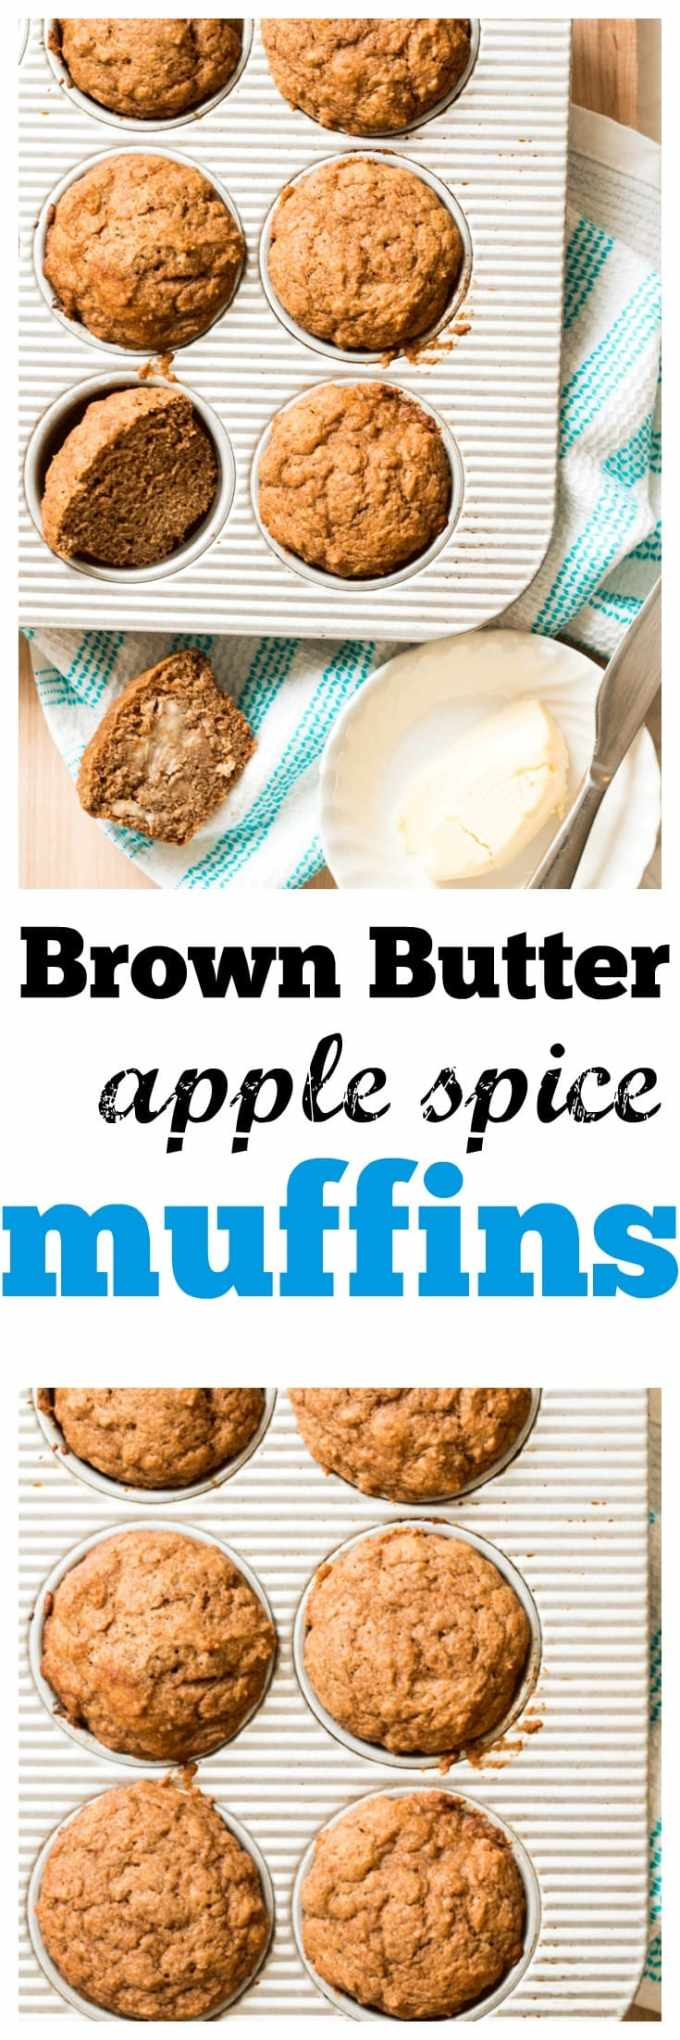 Brown Butter Apple Spice Muffins. Satisfy that sweet mid-afternoon craving naturally. Perfect for little lunch boxes and freezer friendly.